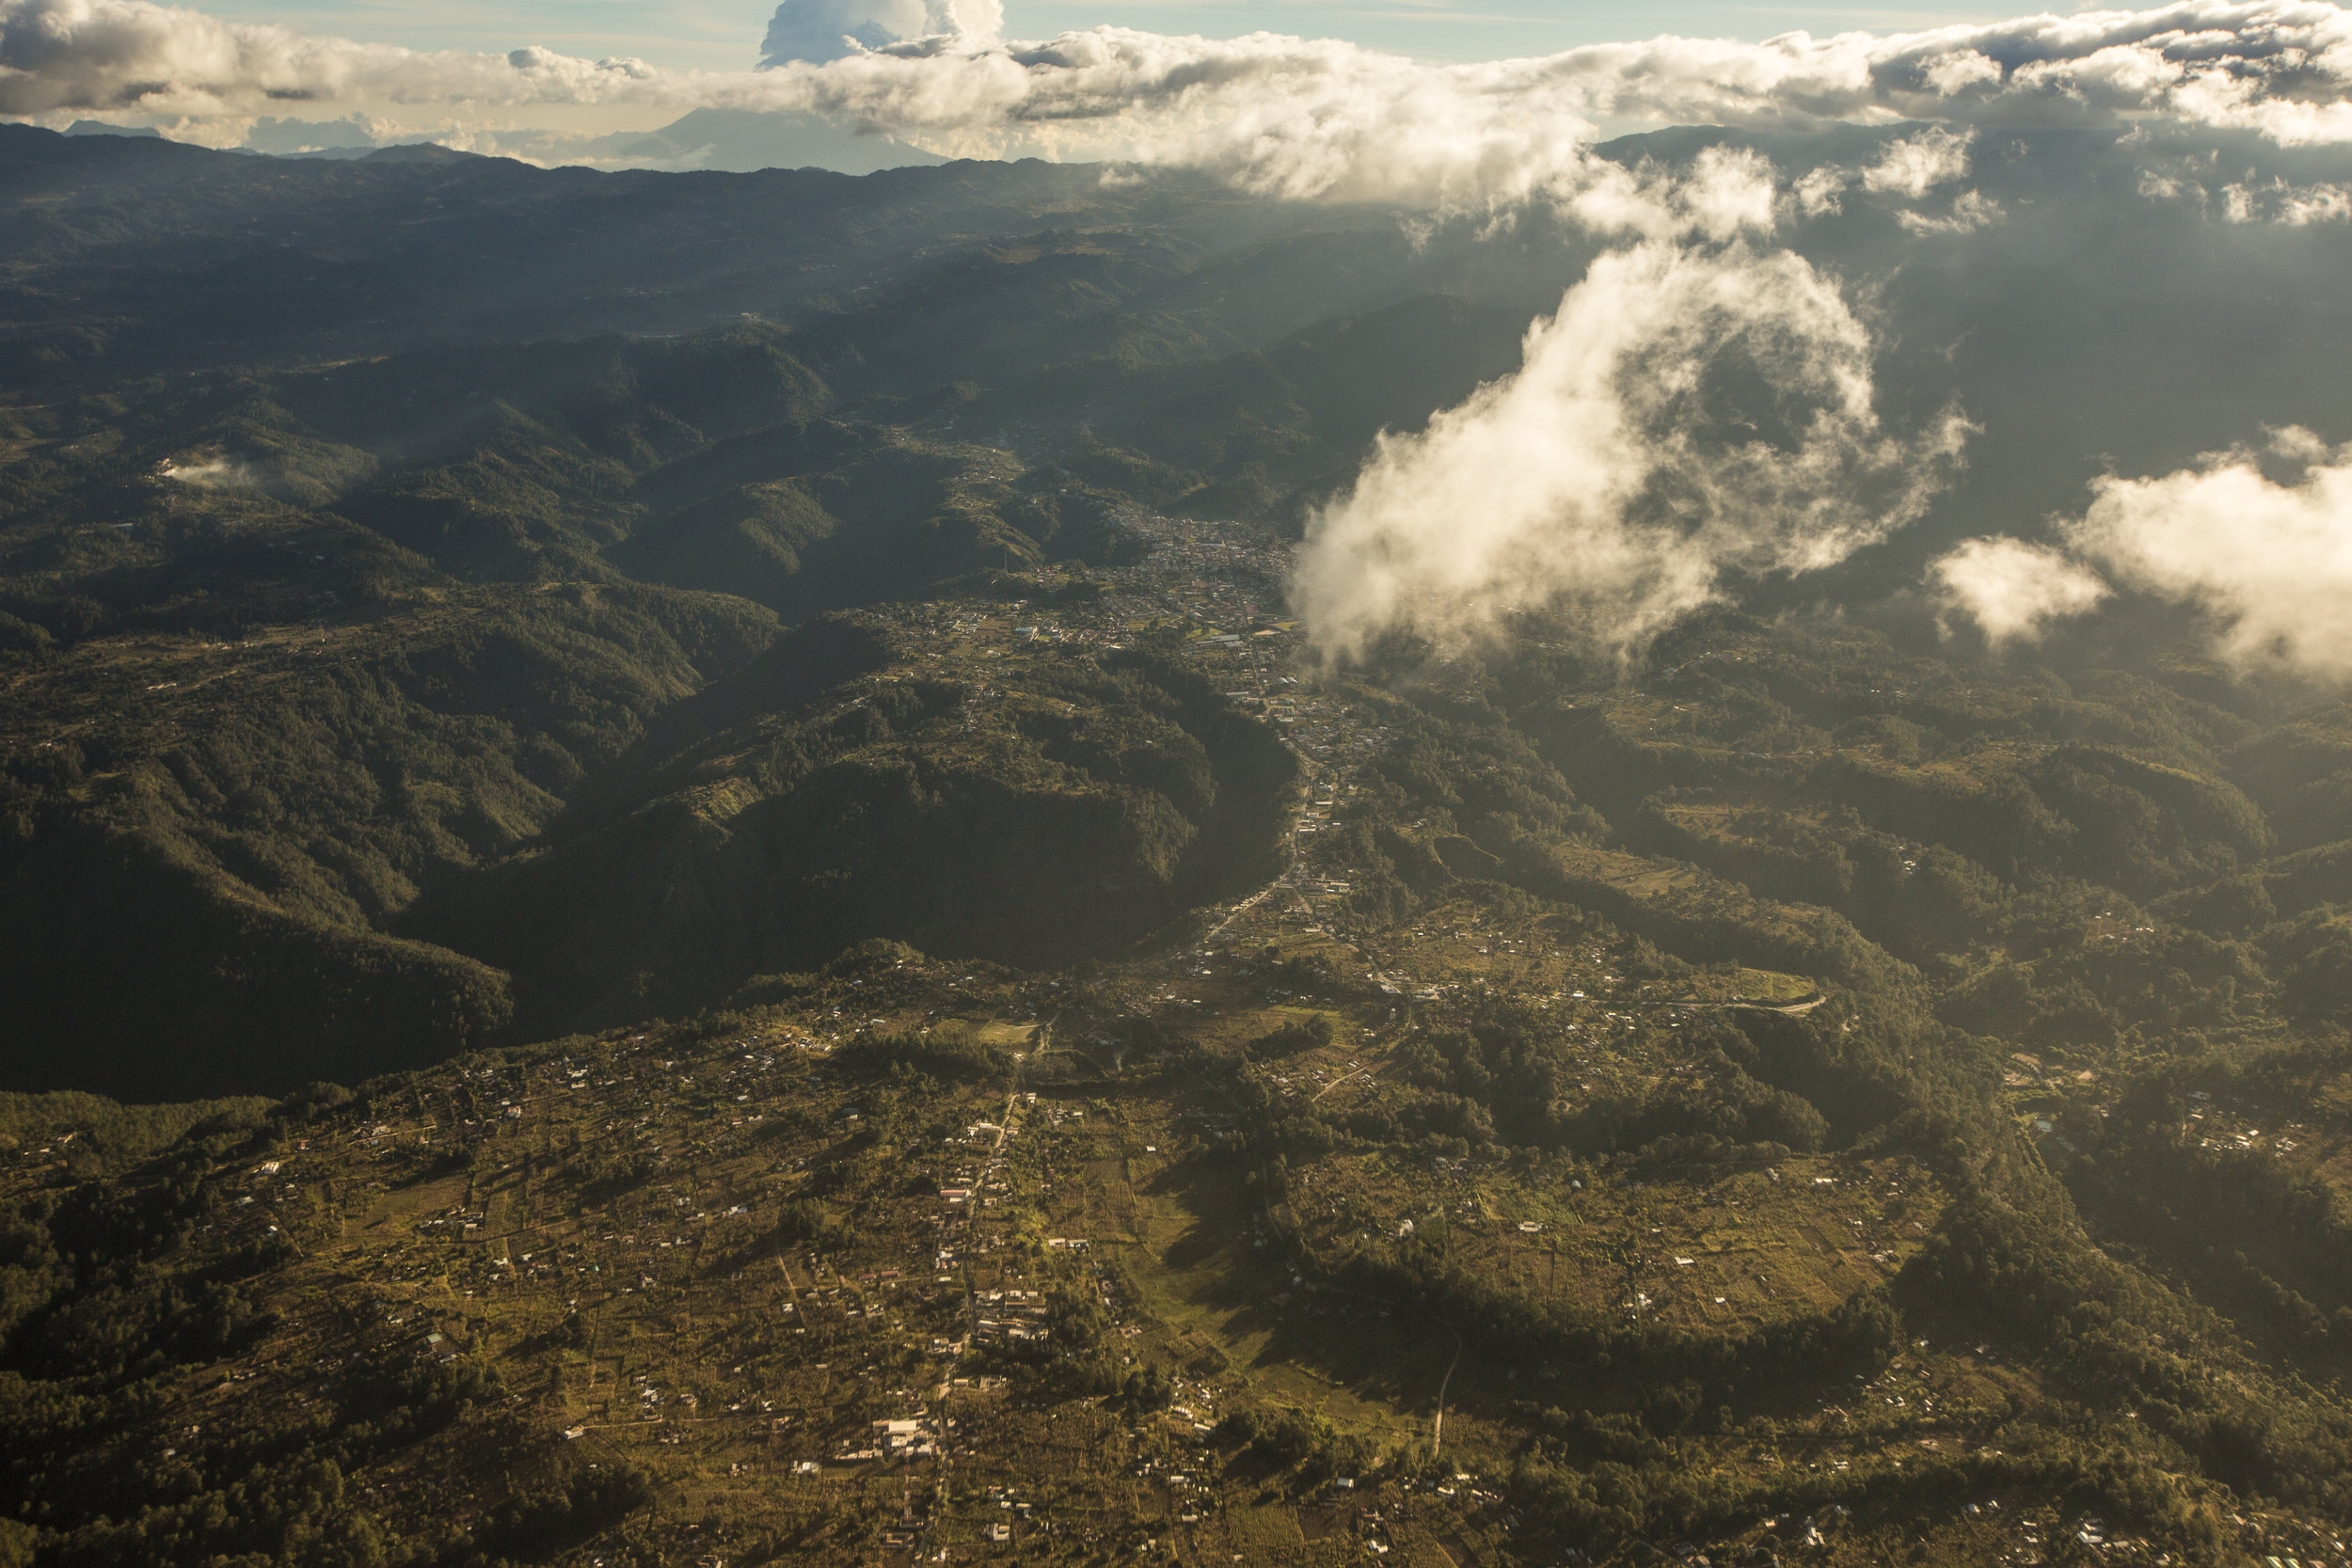 Aerial view of the Quiché region in the Guatemalan highlands. Photograph by © José Manuel del Busto Miralbés.